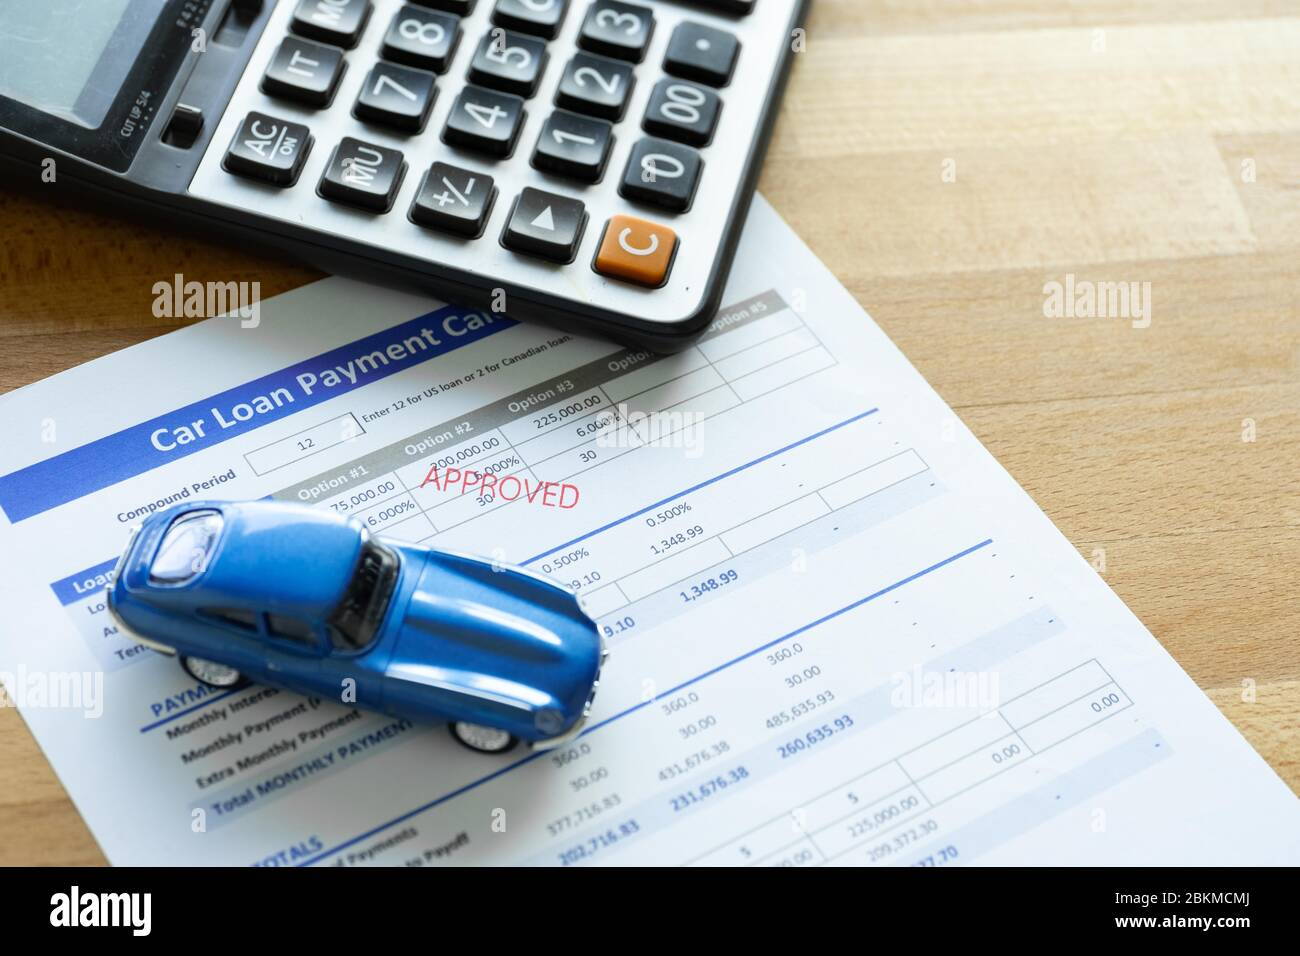 Car Loan Agreement Approved By Financial Bank Payment Contract Calculator Form A Blue Car With Paper On The Table With Copy Space Stock Photo Alamy